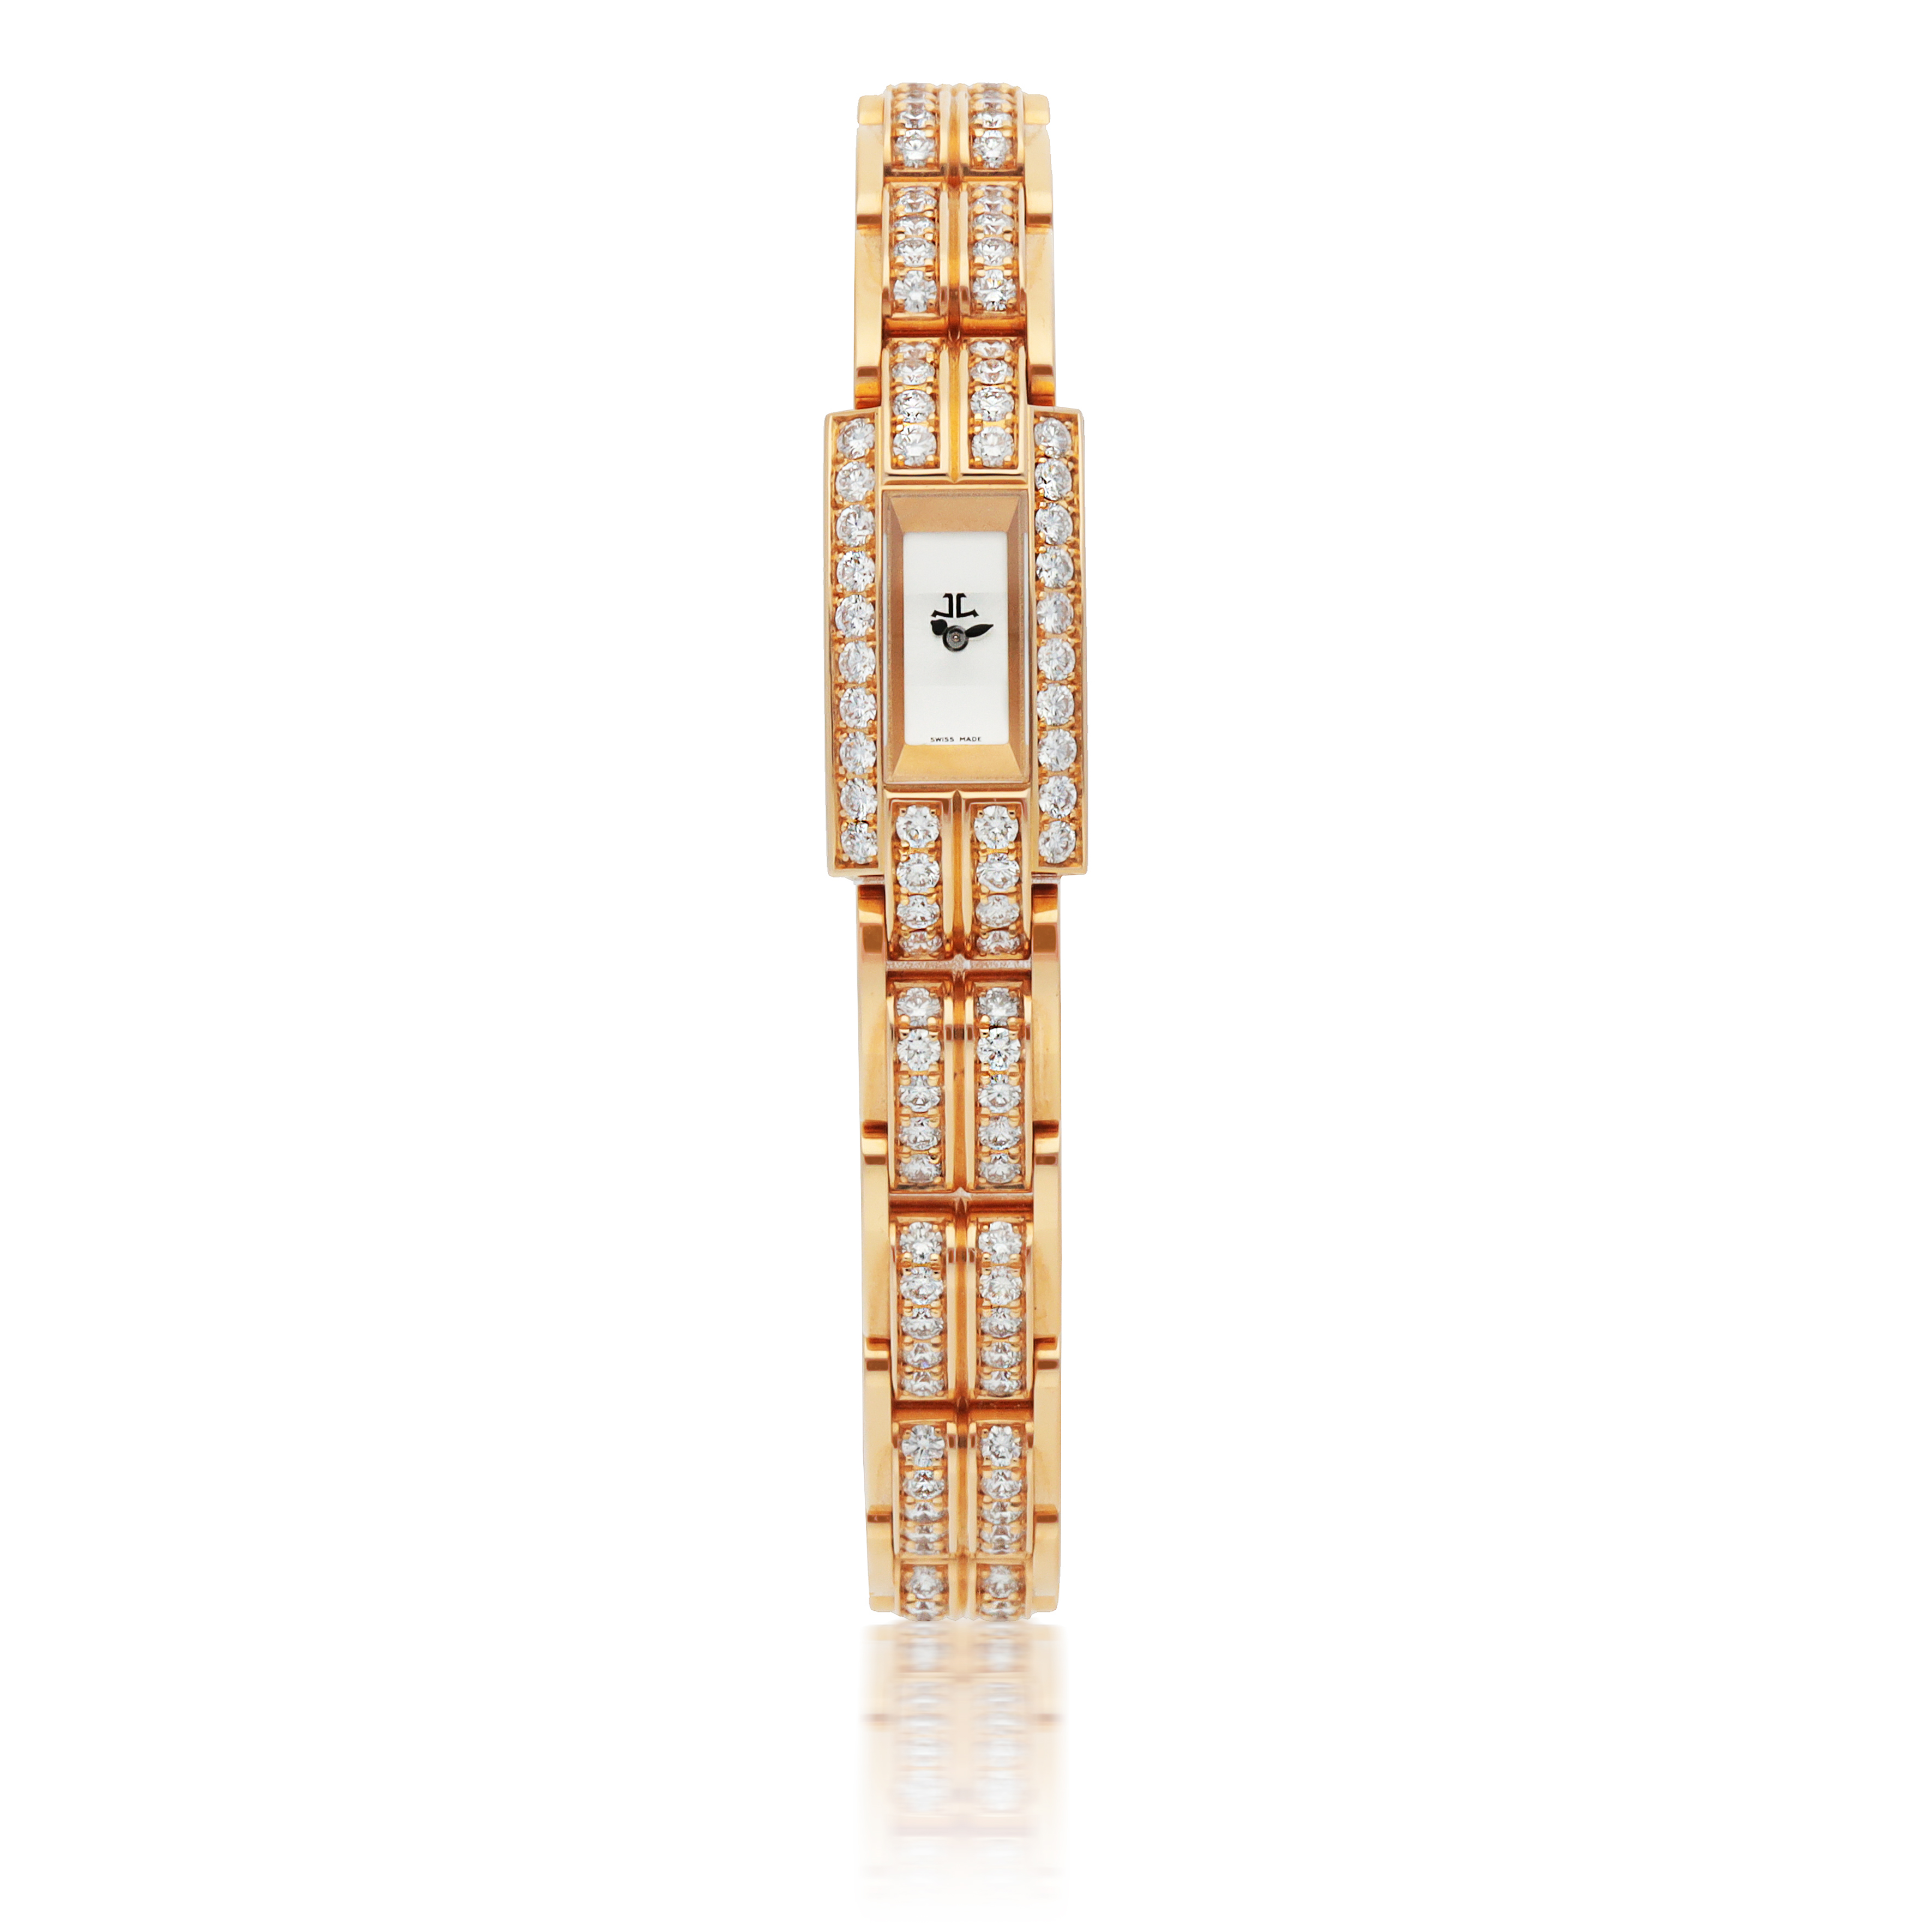 View full screen - View 1 of Lot 563. JAEGER-LECOULTRE | REF 285.2.70, PINK GOLD AND DIAMOND-SET BRACELET WATCH   CIRCA 2012.